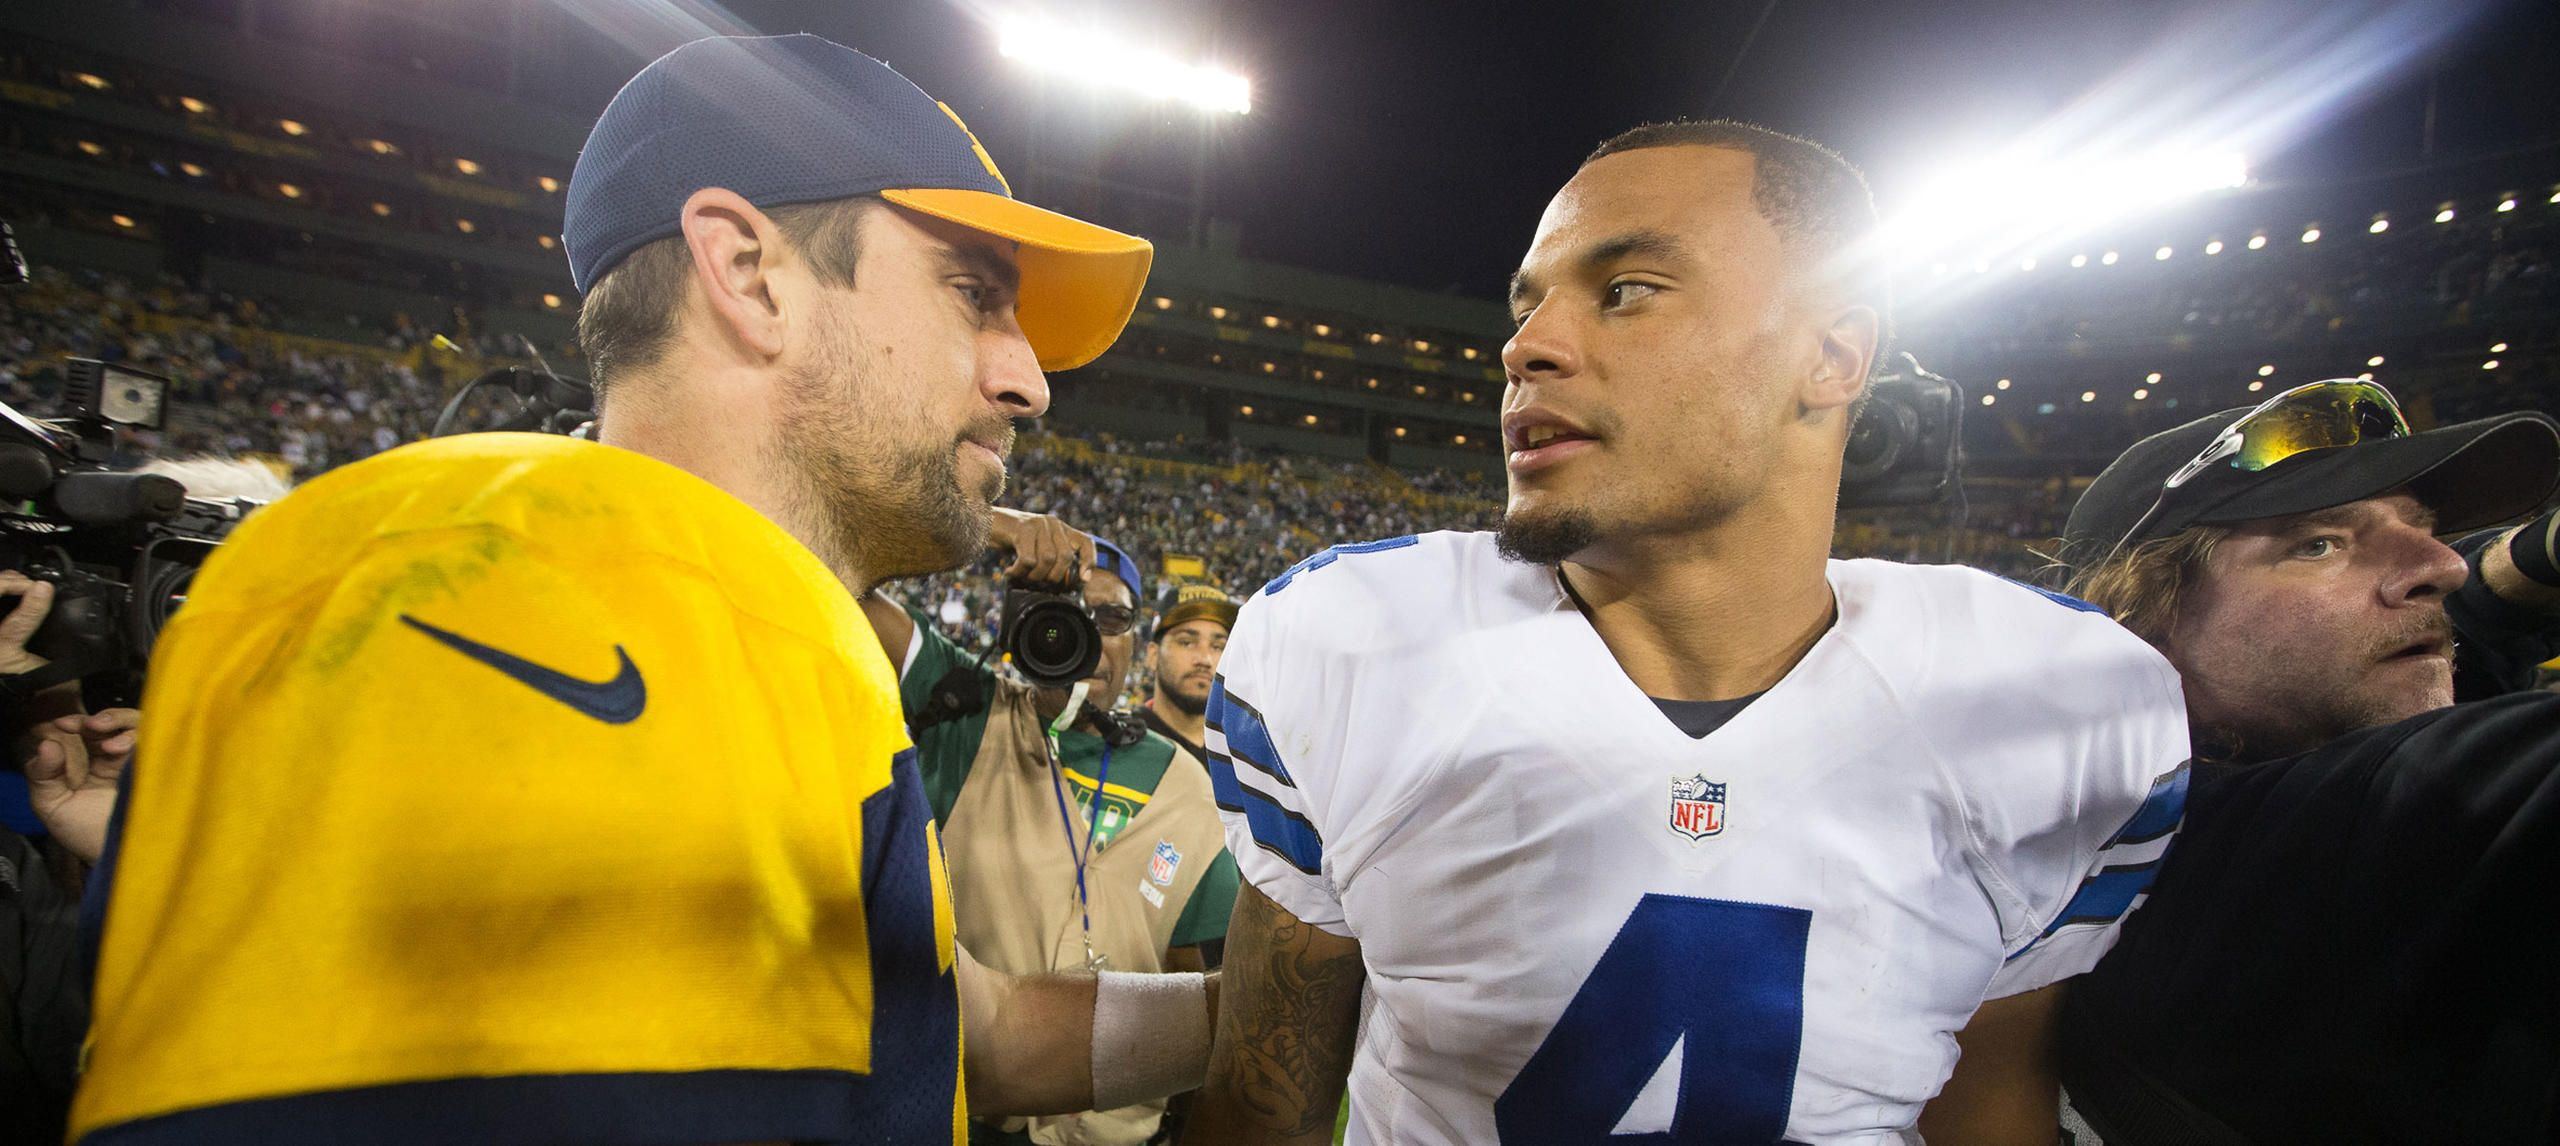 Dak S Favorite Aspect Of Rodgers Game Is One Of His Own Strengths Dallas Cowboys New York Giants Frisco Texas